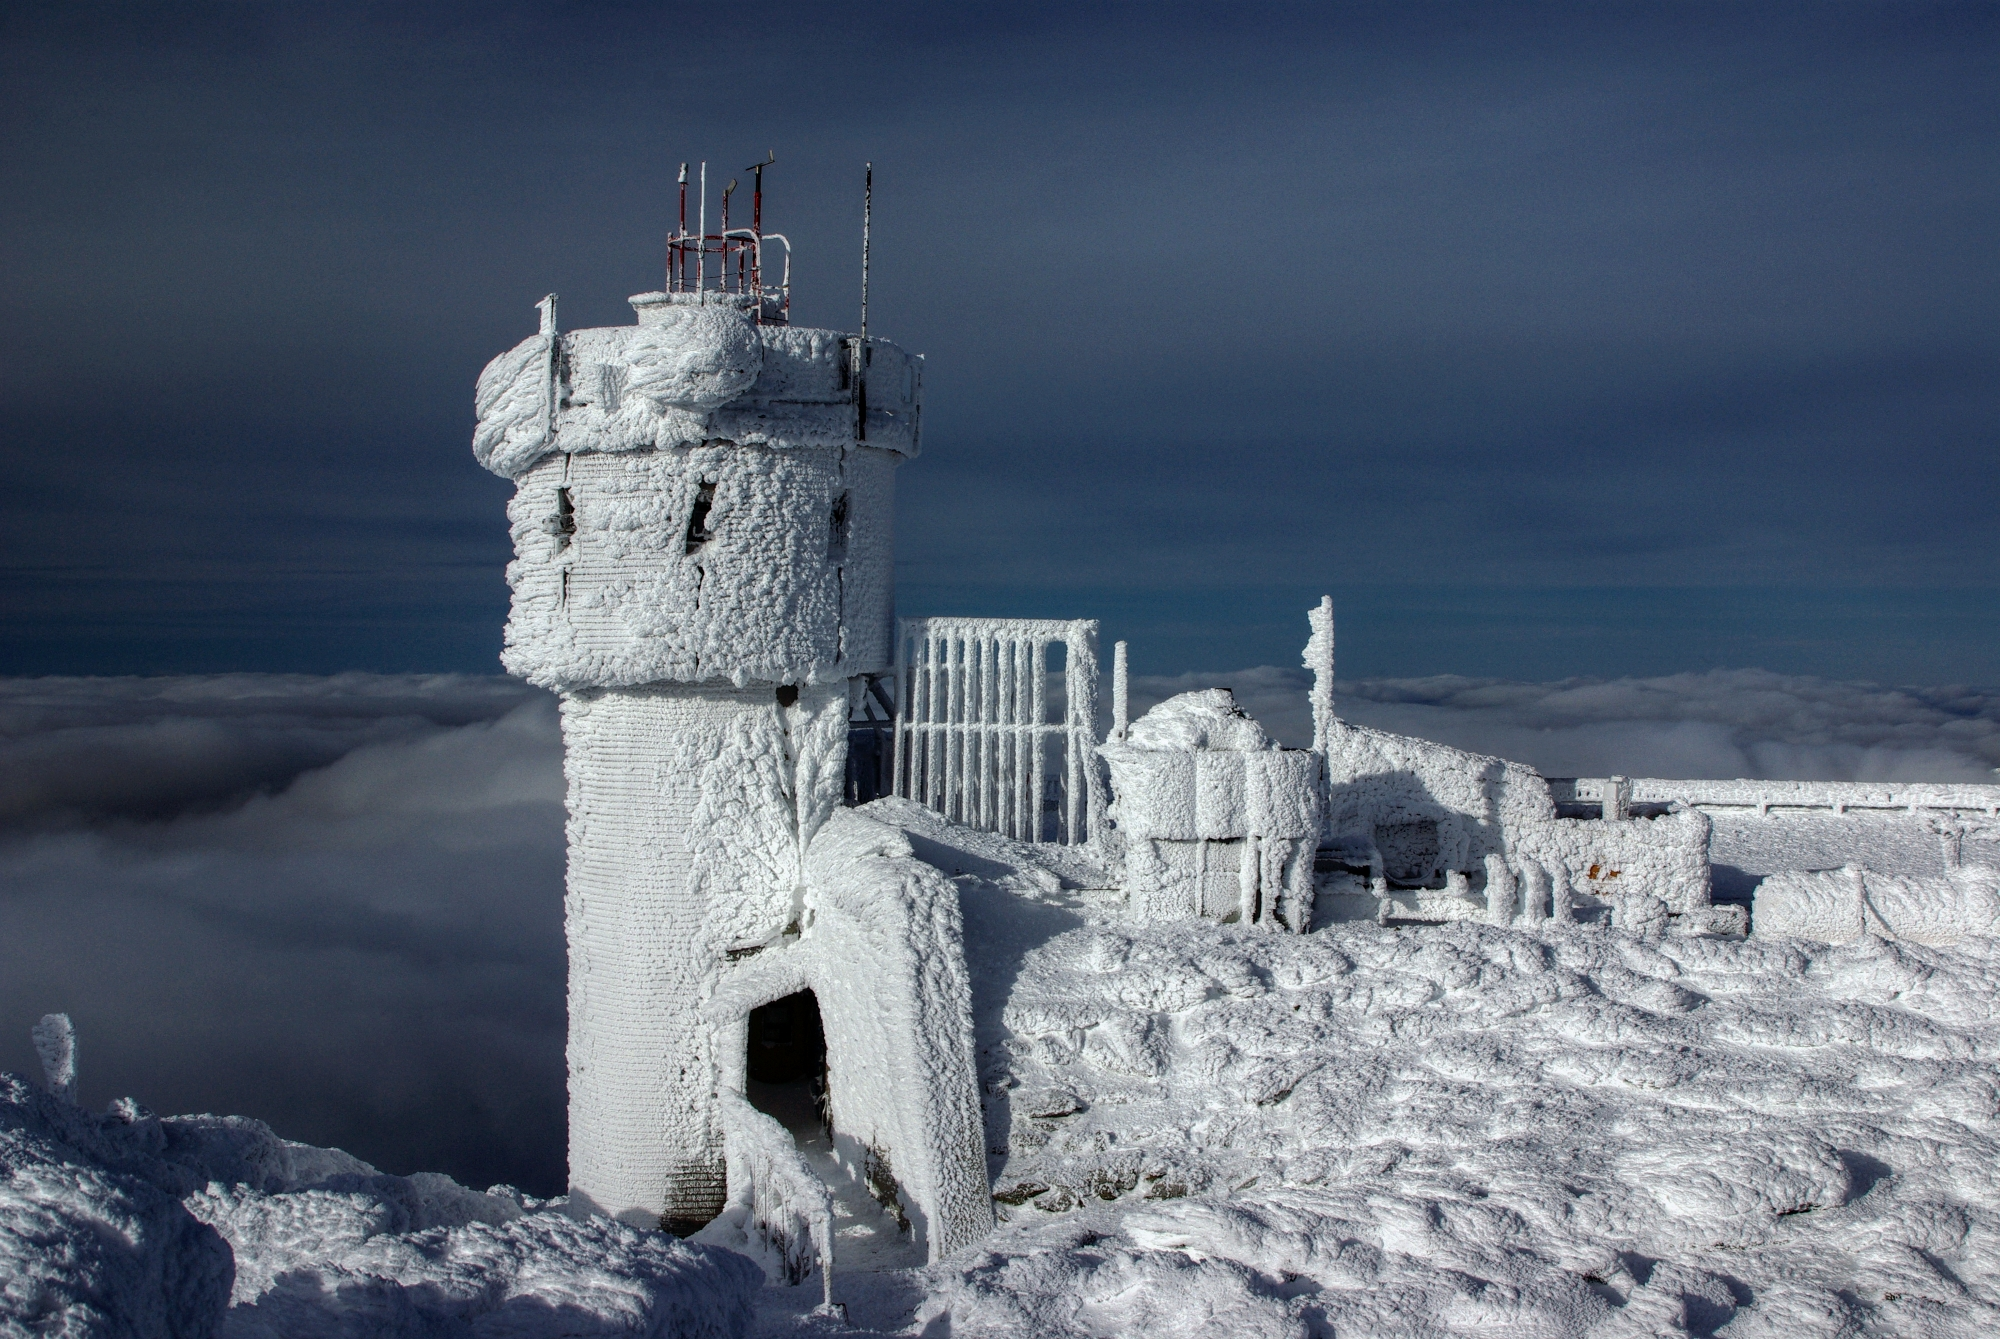 Observatory Tower in Winter